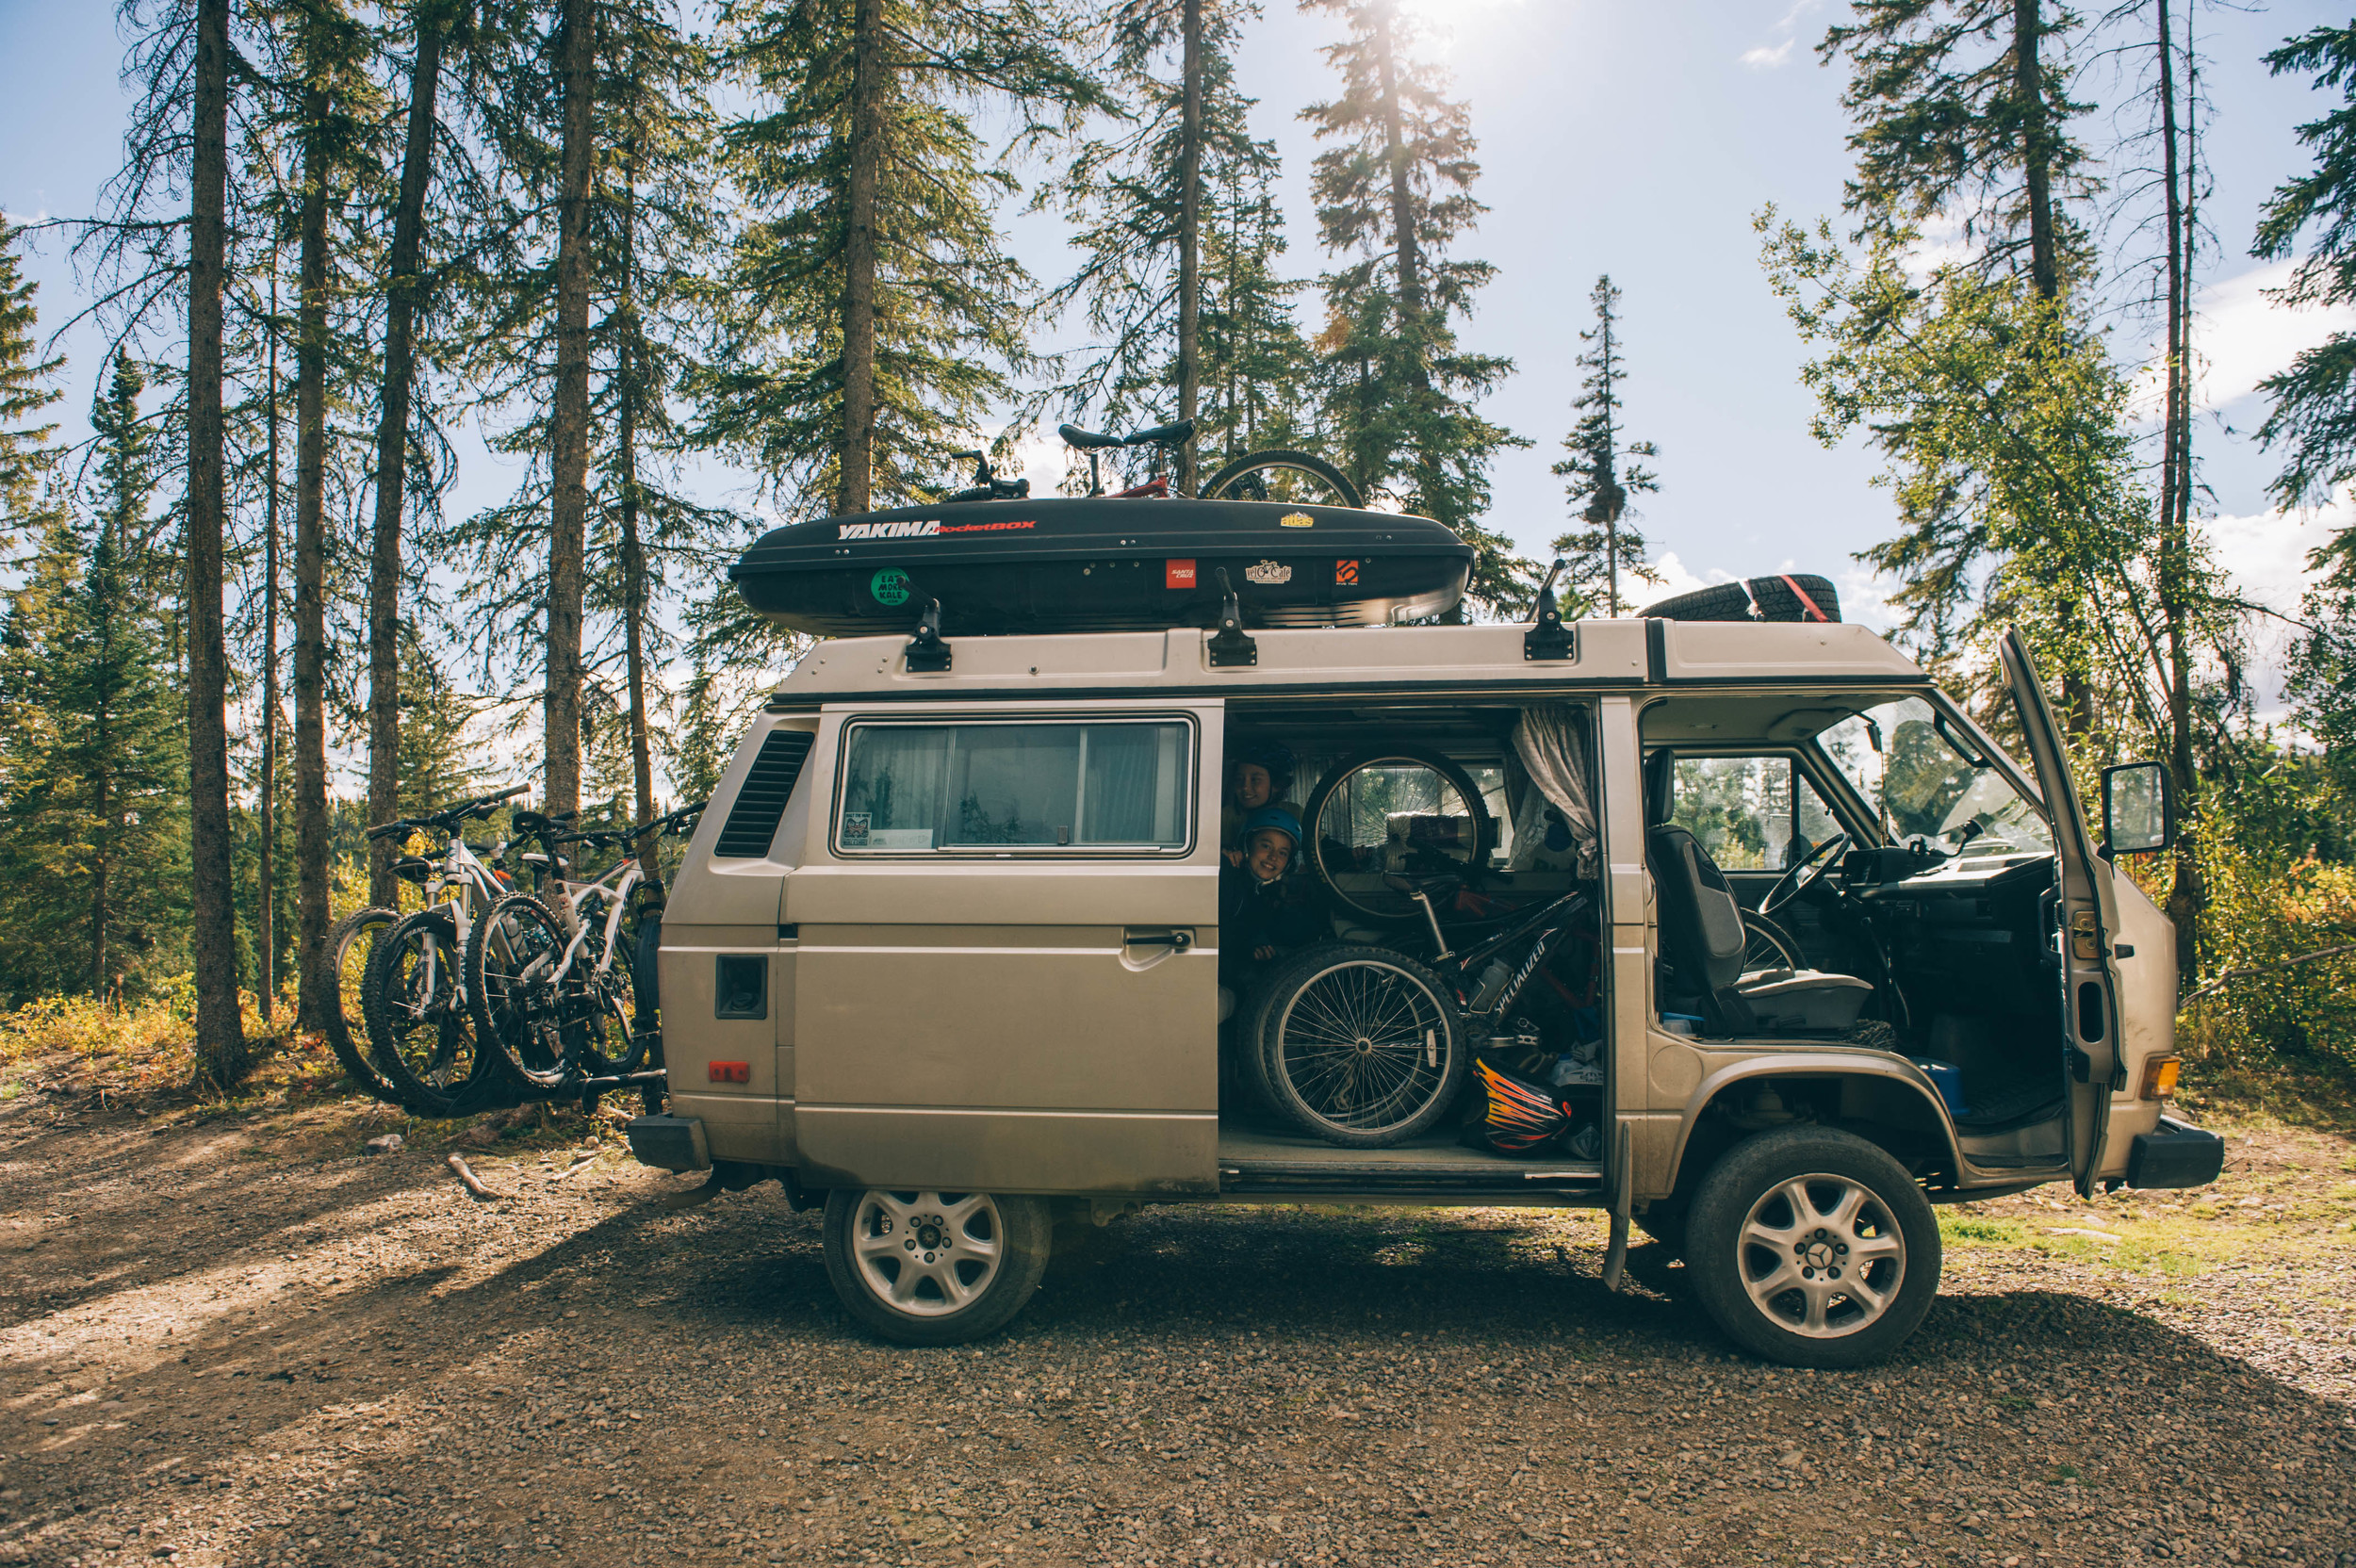 How many bikes and persons can you fit in a Westy? For this ride, 8 bikes and 10 persons!